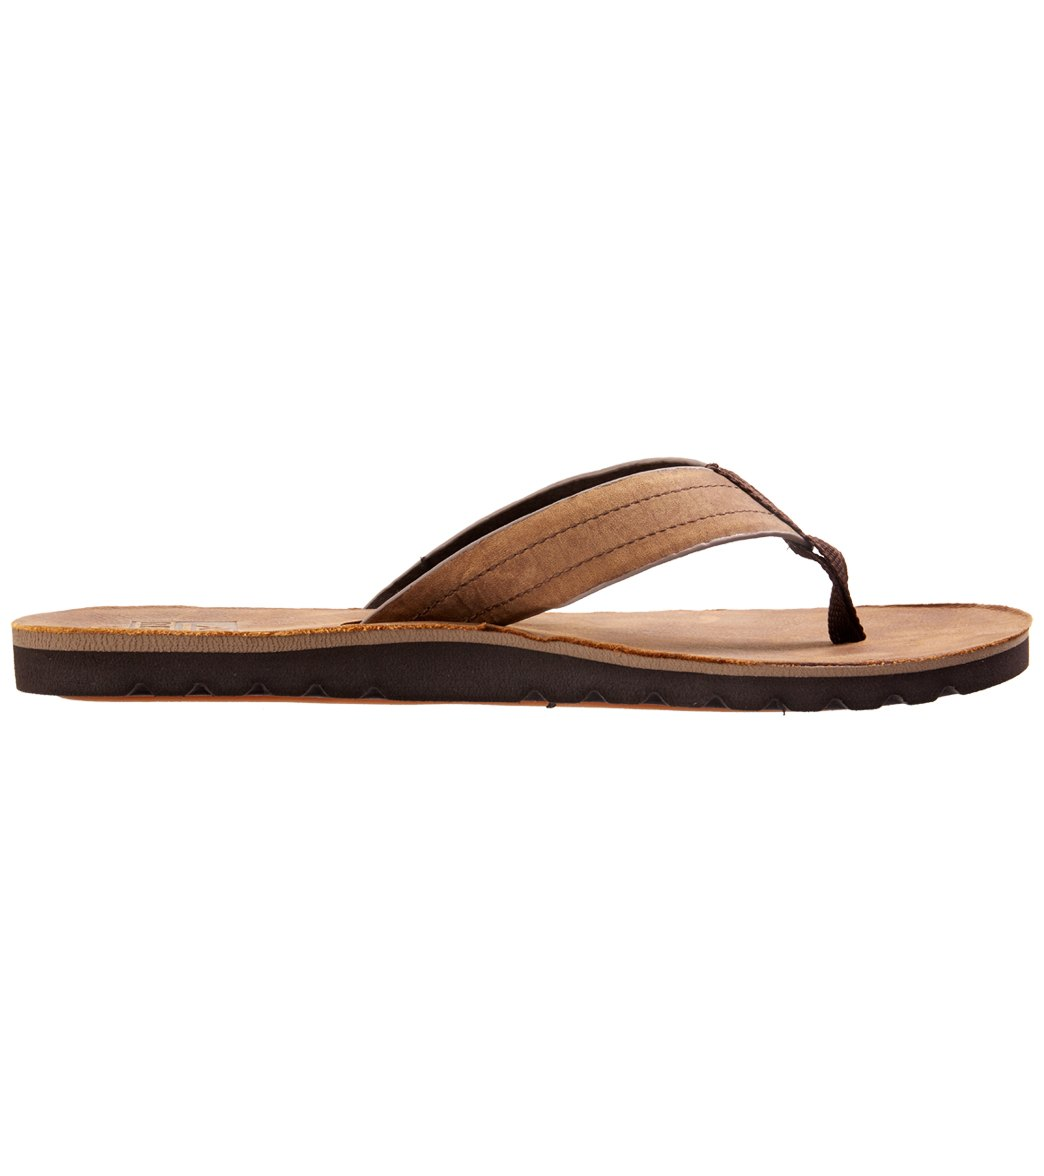 6920e5be32bb Reef Men s Voyage LE Flip Flop at SwimOutlet.com - Free Shipping